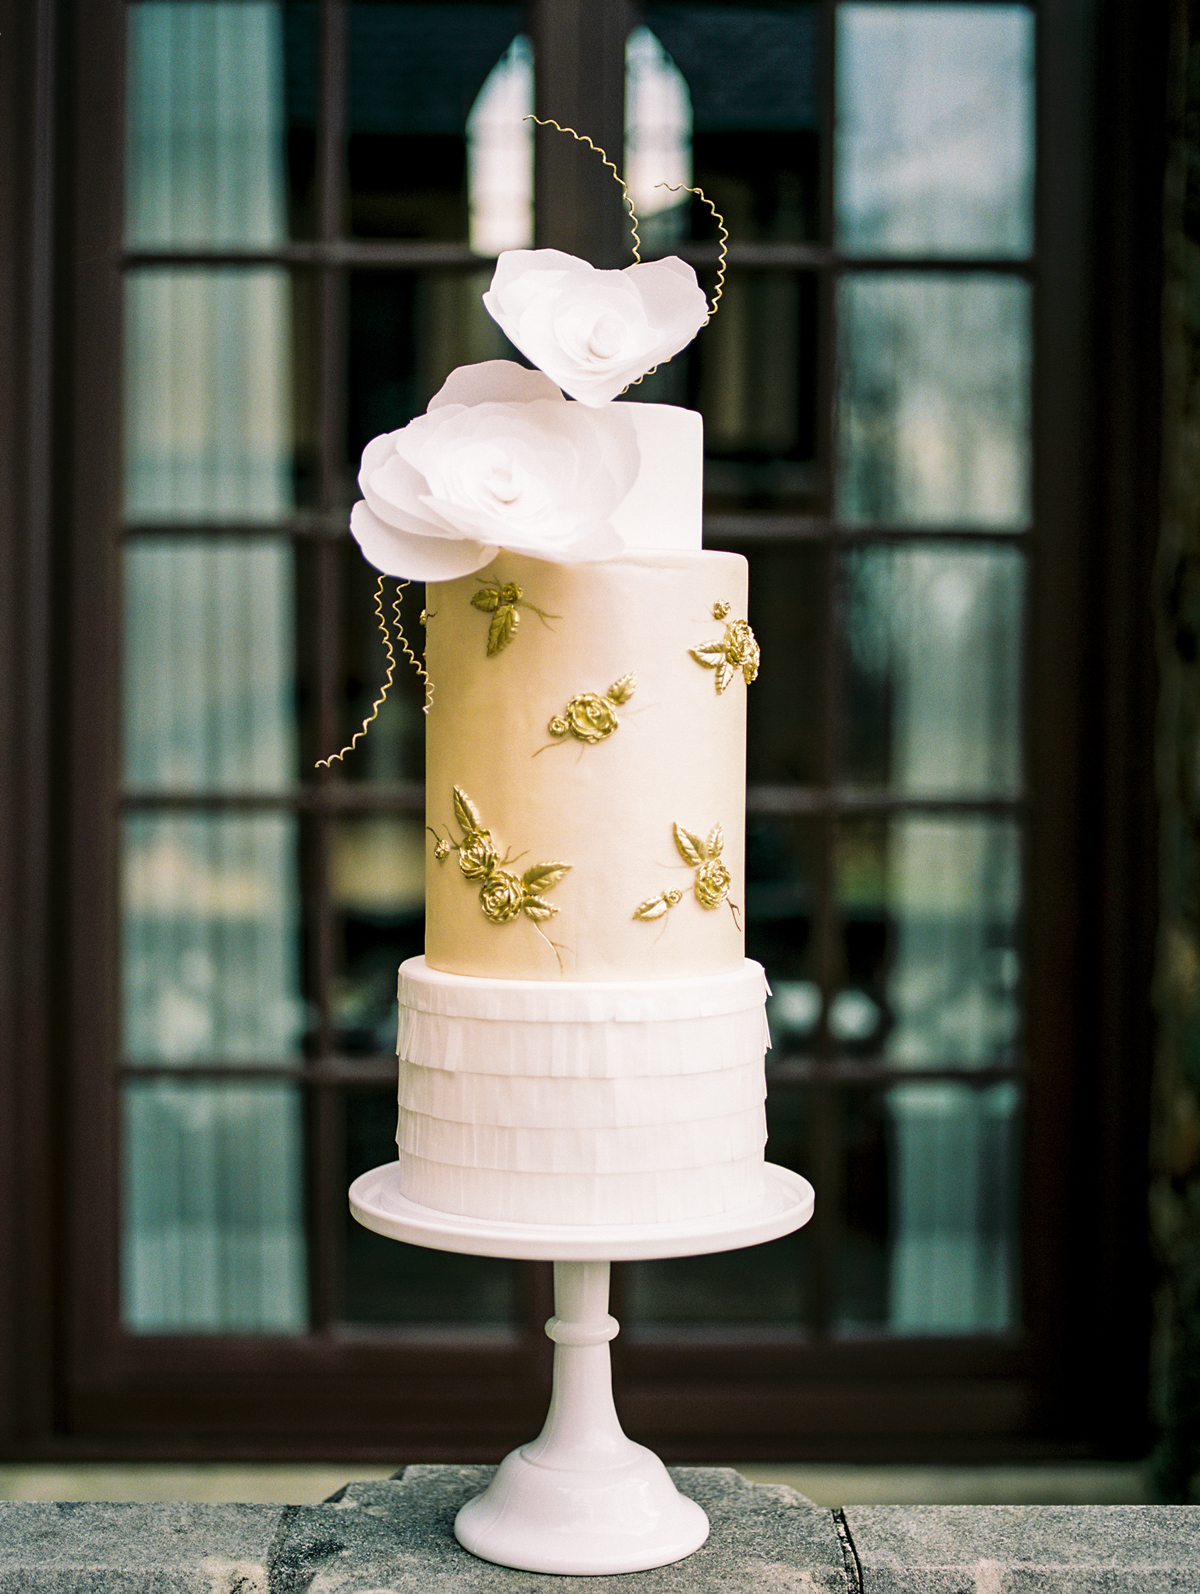 three tiered white and gold frosted bas-relief wedding cake